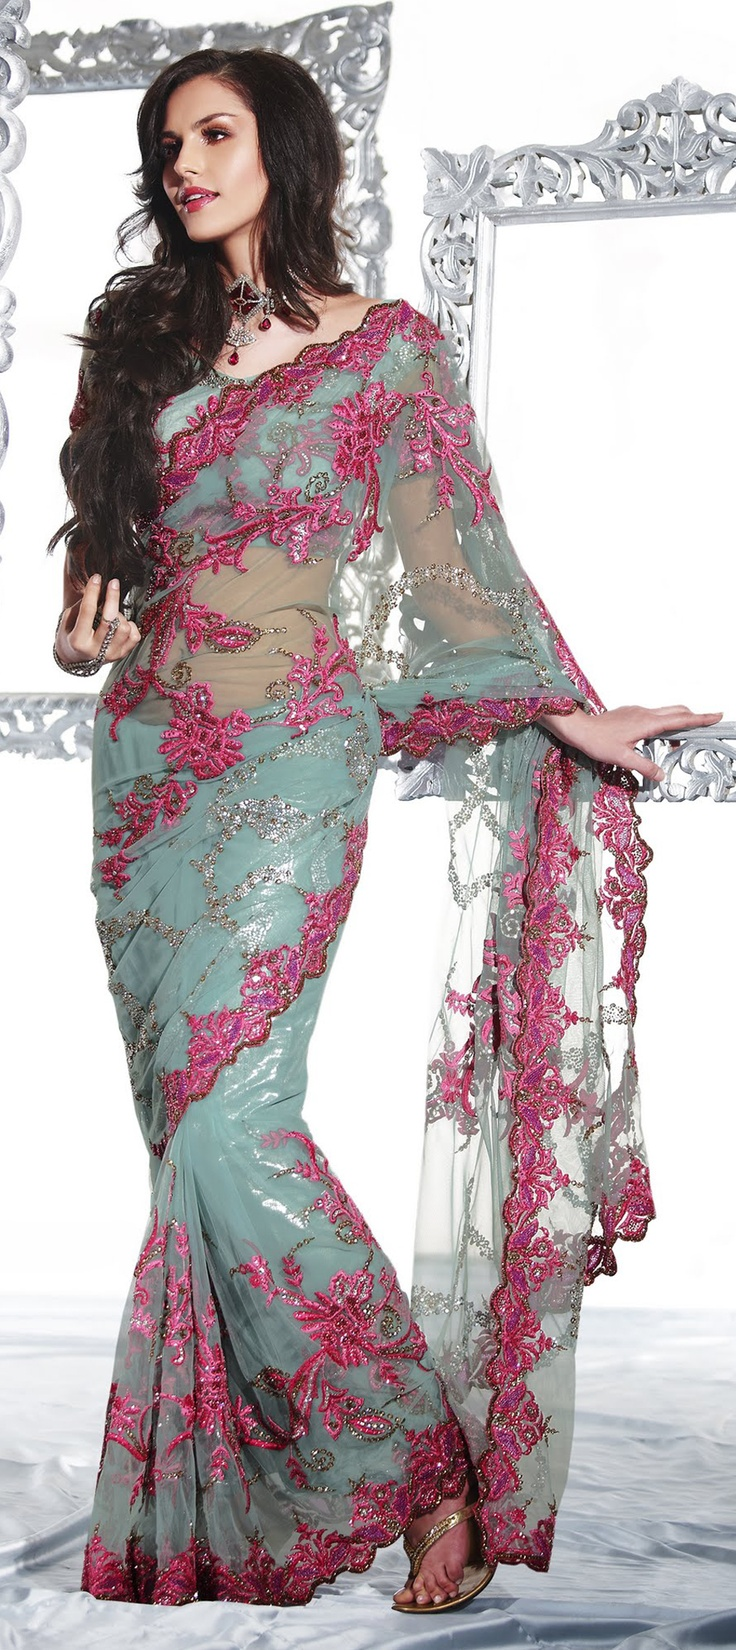 New arrival printed saree .......Awesome design,excellent look...Available at-> http://www.indianweddingsaree.com/product/71830.html